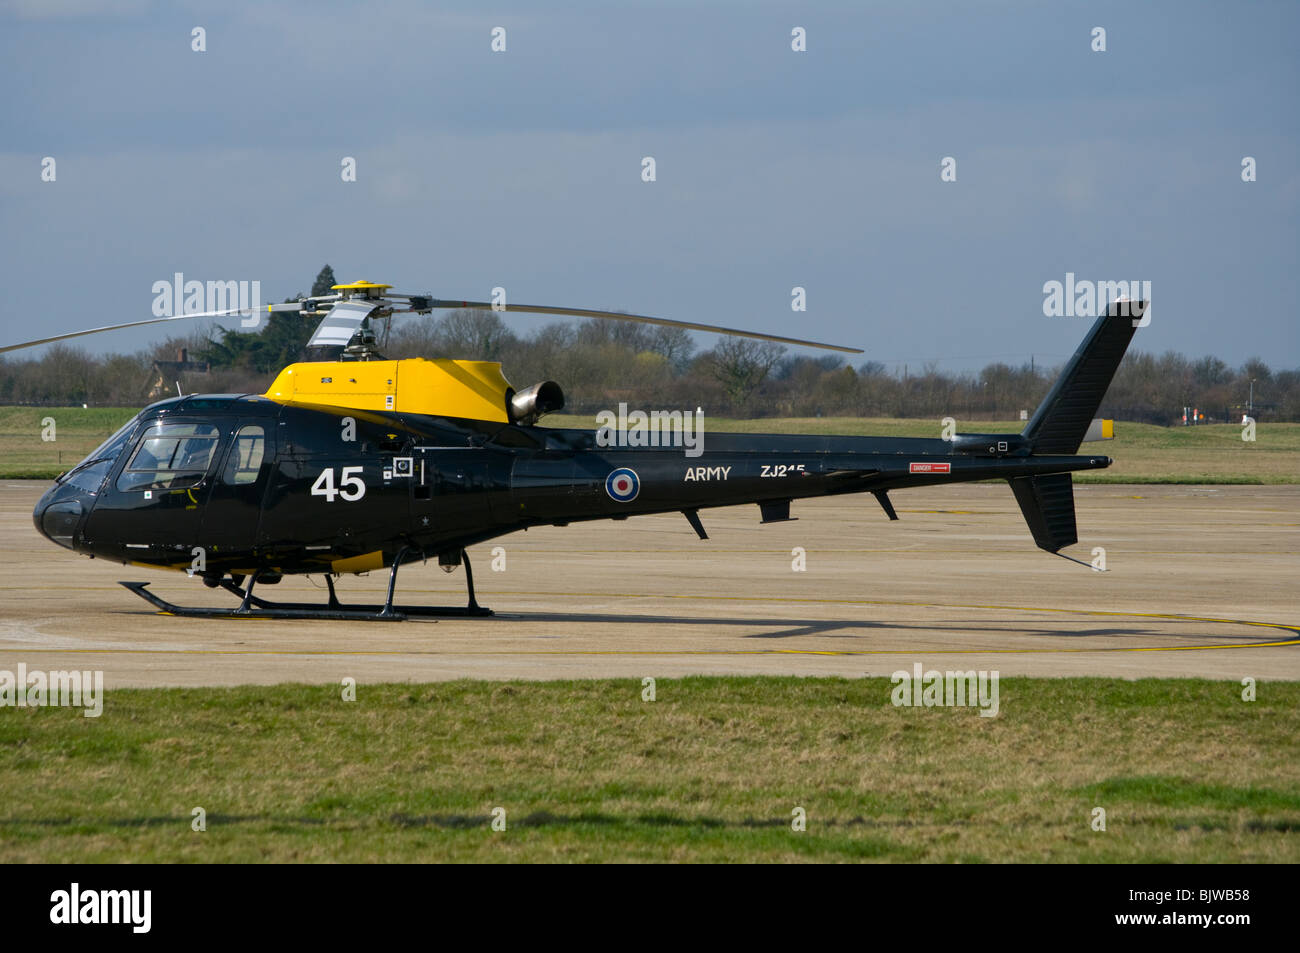 An Army Air Corps Squirrel Helicopter On The Tarmac At Wattisham Airfield Suffolk - Stock Image